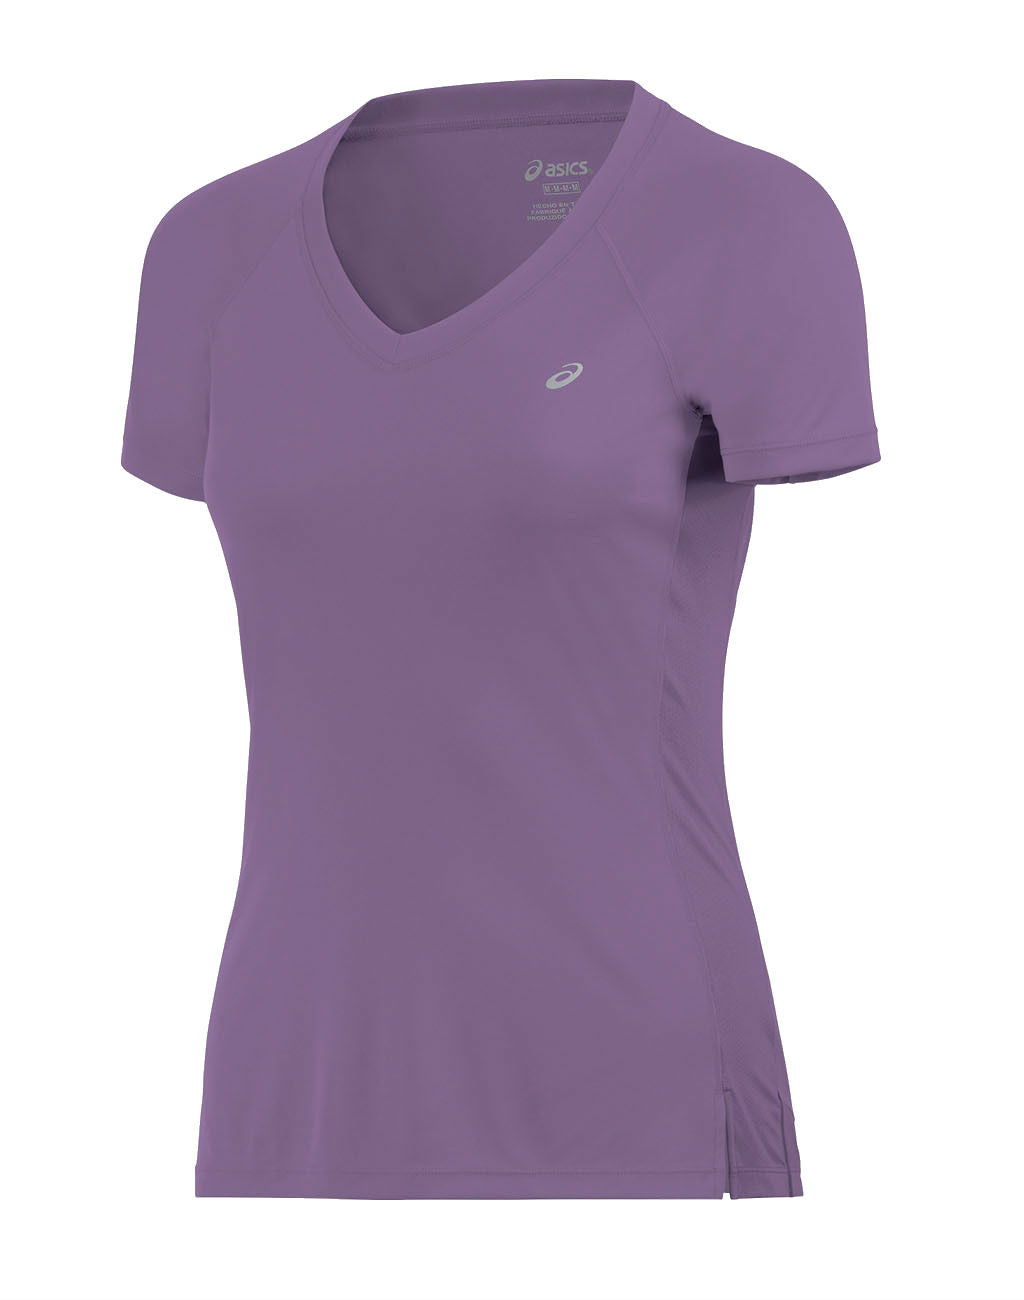 ASICS ASX Dry Short Sleeve Top (Women's)Purple_master_image